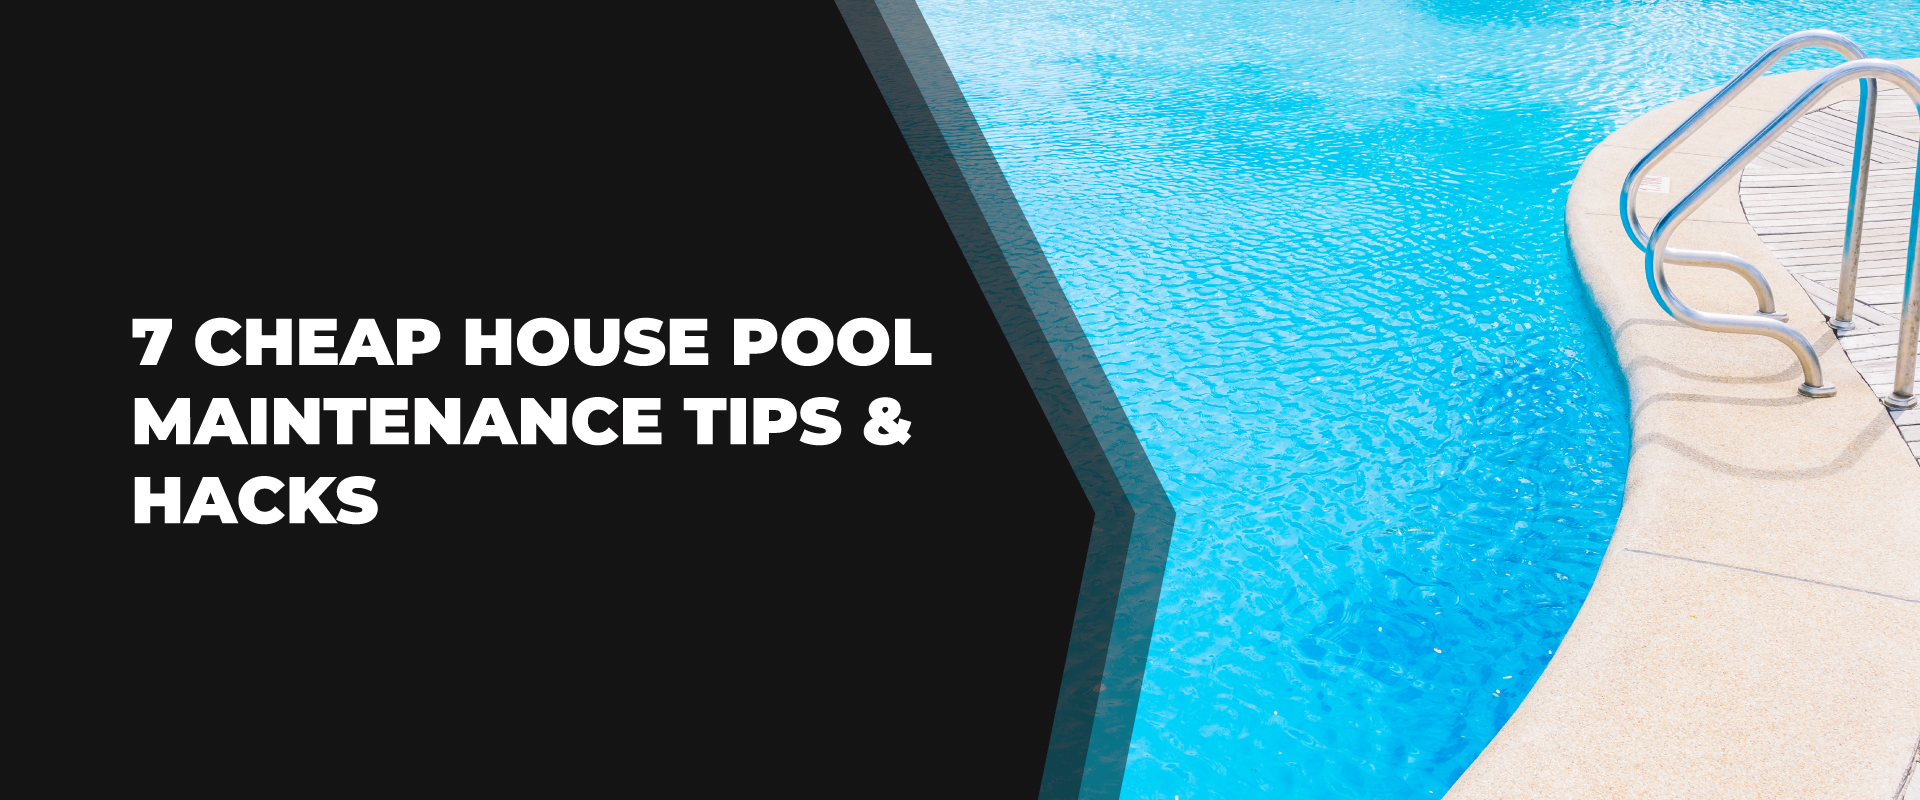 House Pool Maintenance Tips & Hacks